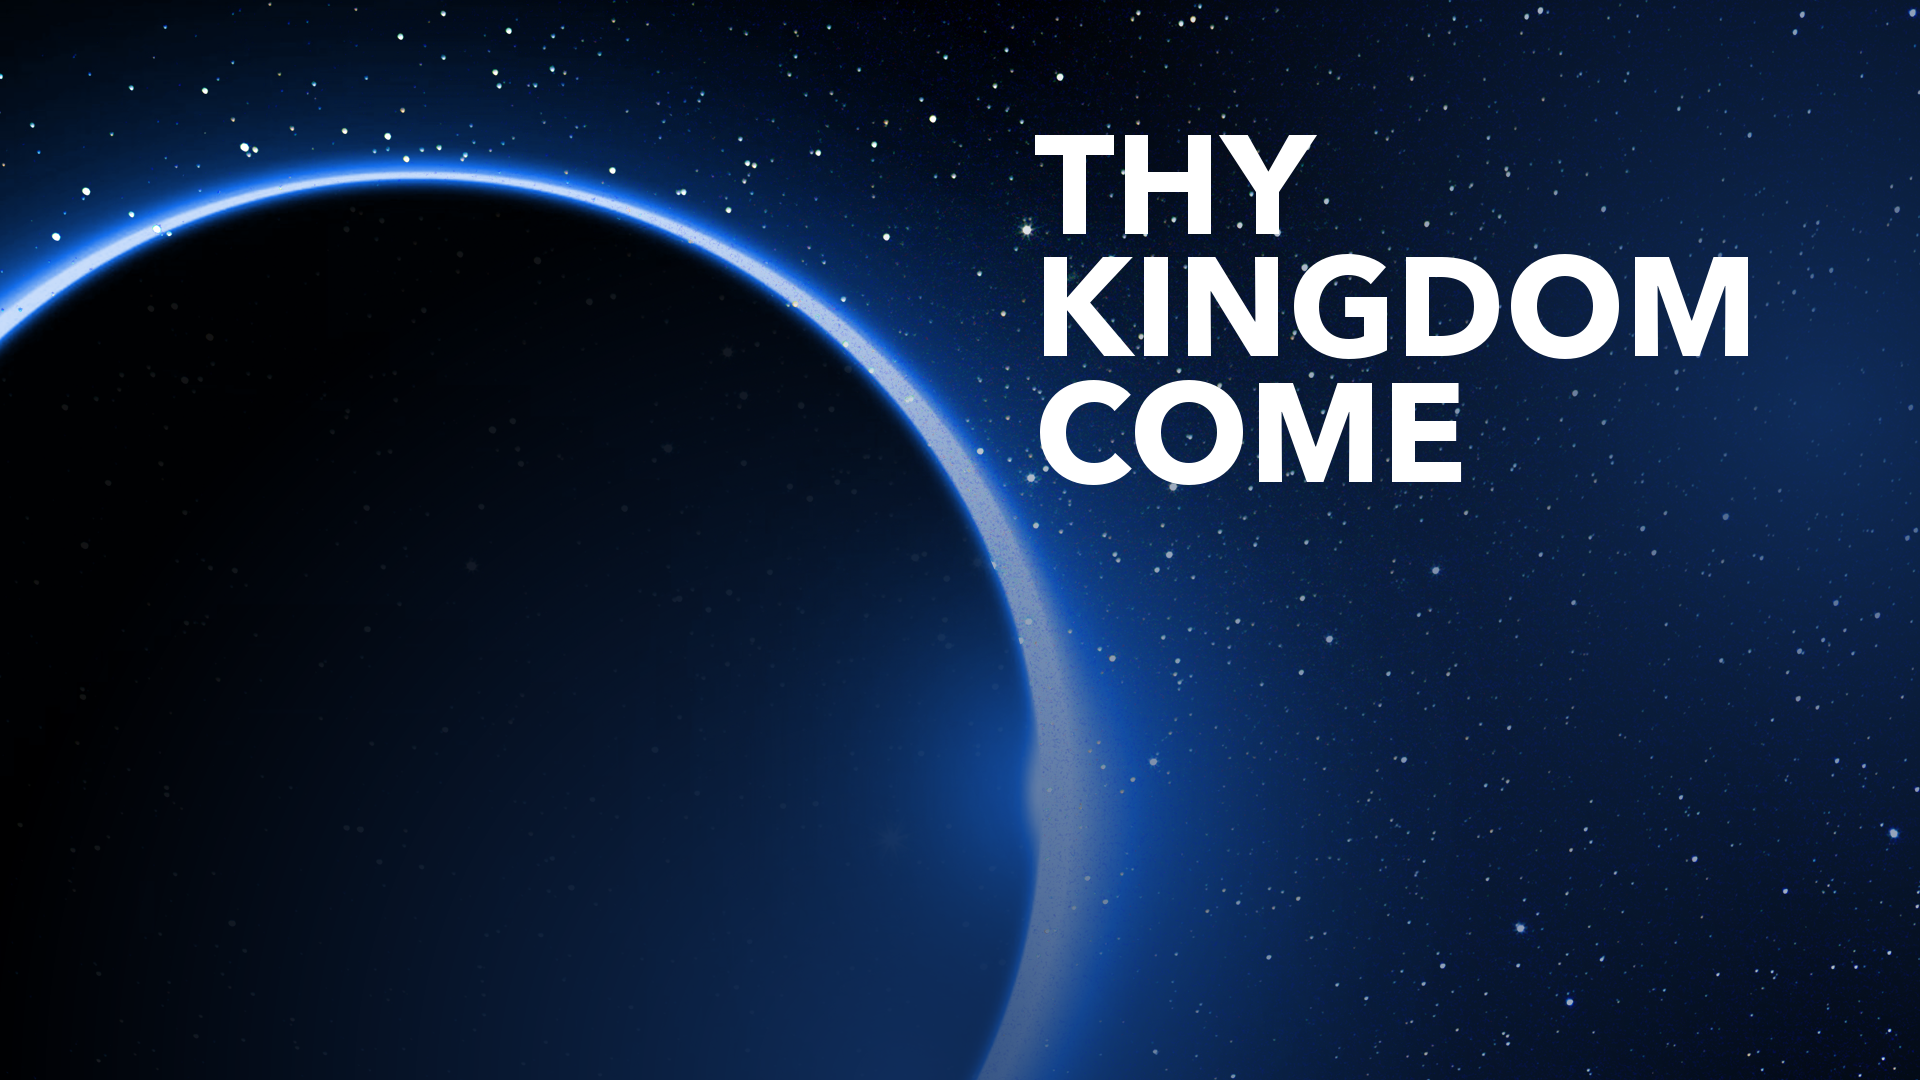 THY KINGDOM COME TITLE SLIDE.png